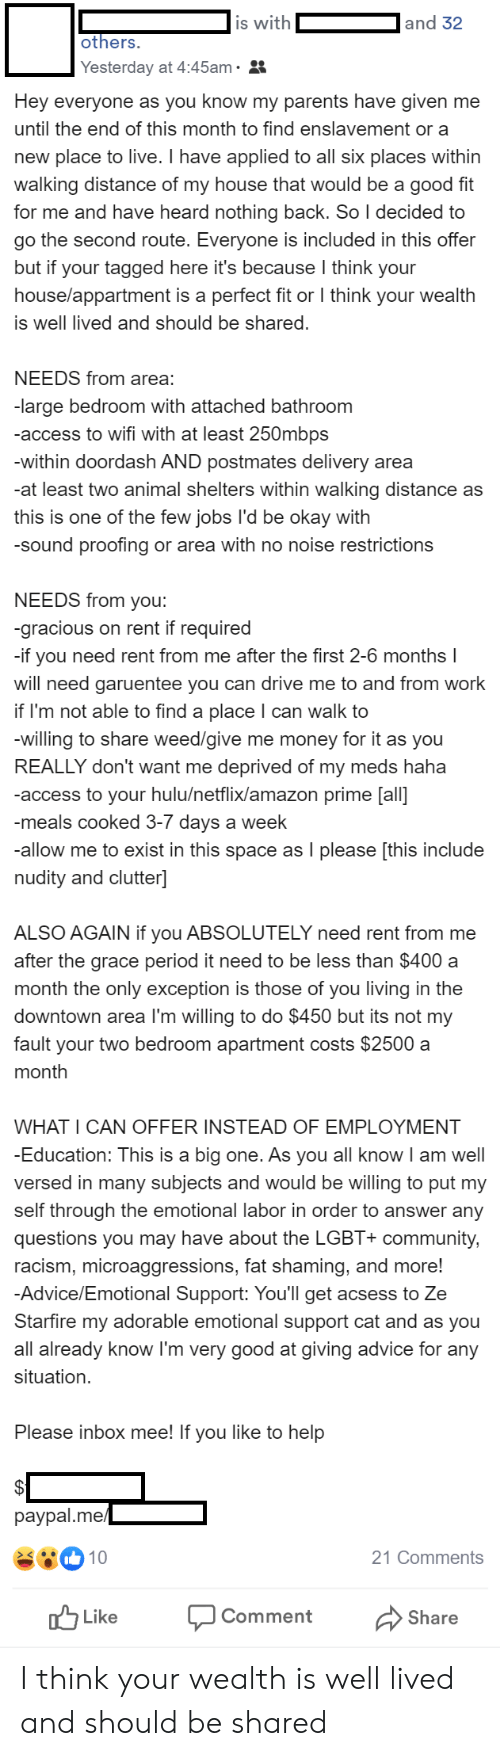 Advice, Amazon, and Amazon Prime: is with  and 32  others.  Yesterday at 4:45am.  Hey everyone as you know my parents have given me  until the end of this month to find enslavement or a  new place to live. I have applied to all six places within  walking distance of my house that would be a good fit  for me and have heard nothing back. So I decided to  go the second route. Everyone is included in this offer  but if your tagged here it's because I think your  house/appartment is a perfect fit or I think your wealth  is well lived and should be shared  NEEDS from area:  -large bedroom with attached bathroom  -access to wifi with at least 250mbps  -within doordash AND postmates delivery area  -at least two animal shelters within walking distance as  this is one of the few jobs l'd be okay with  -sound proofing or area with no noise restrictions  NEEDS from you:  -gracious on rent if required  if  need rent from me after the first 2-6 months I  you  will need garuentee you can drive me to and from work  if I'm not able to find a place I can walk to  -willing to share weed/give me money for it as you  REALLY don't want me deprived of my meds haha  -access to your hulu/netflix/amazon prime [all]  -meals cooked 3-7 days a week  -allow me to exist in this space as I please [this include  nudity and clutter]  ALSO AGAIN if you ABSOLUTELY need rent from me  after the grace period it need to be less than $400 a  month the only exception is those of you living in the  downtown area I'm willing to do $450 but its not my  fault your two bedroom apartment costs $2500 a  month  WHAT I CAN OFFER INSTEAD OF EMPLOYMENT  -Education: This is a big one. As you all know I am well  versed in many subjects and would be willing to put my  self through the emotional labor in order to answer any  questions you may have about the LGBT+ community,  racism, microaggressions, fat shaming, and more!  -Advice/Emotional Support: You'll get acsess to Ze  Starfire my adorable emotional support cat and 